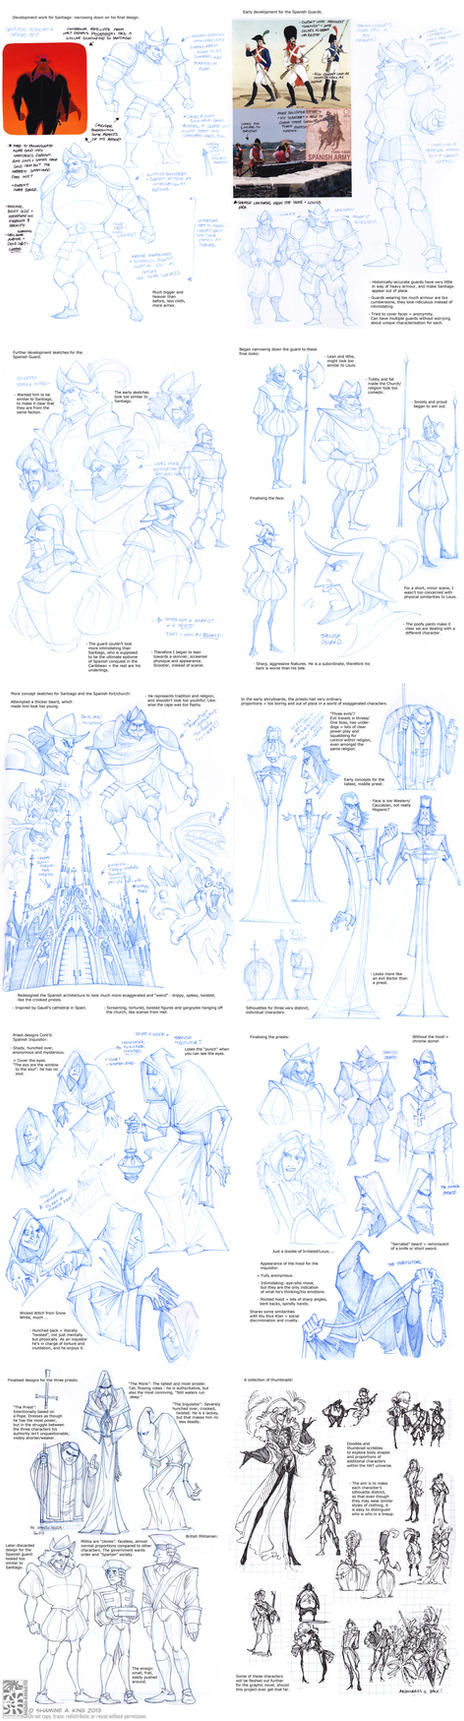 Sketchdump - Spanish Inquisition and Misc by Canadian-Rainwater